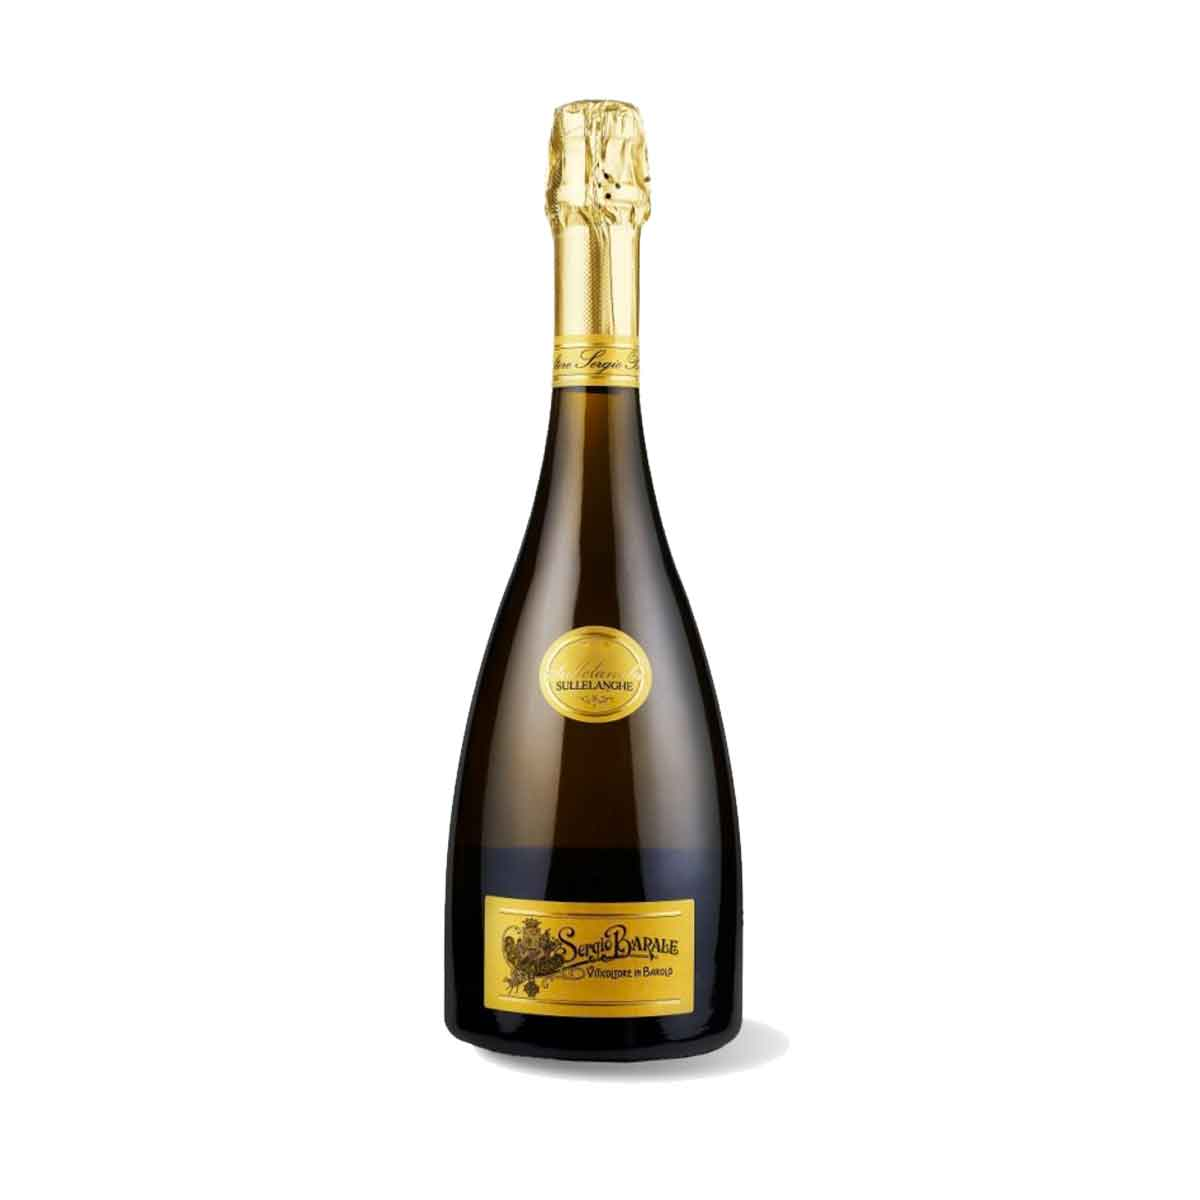 Sullelanghe Sergio Barale Spumante Extra Brut